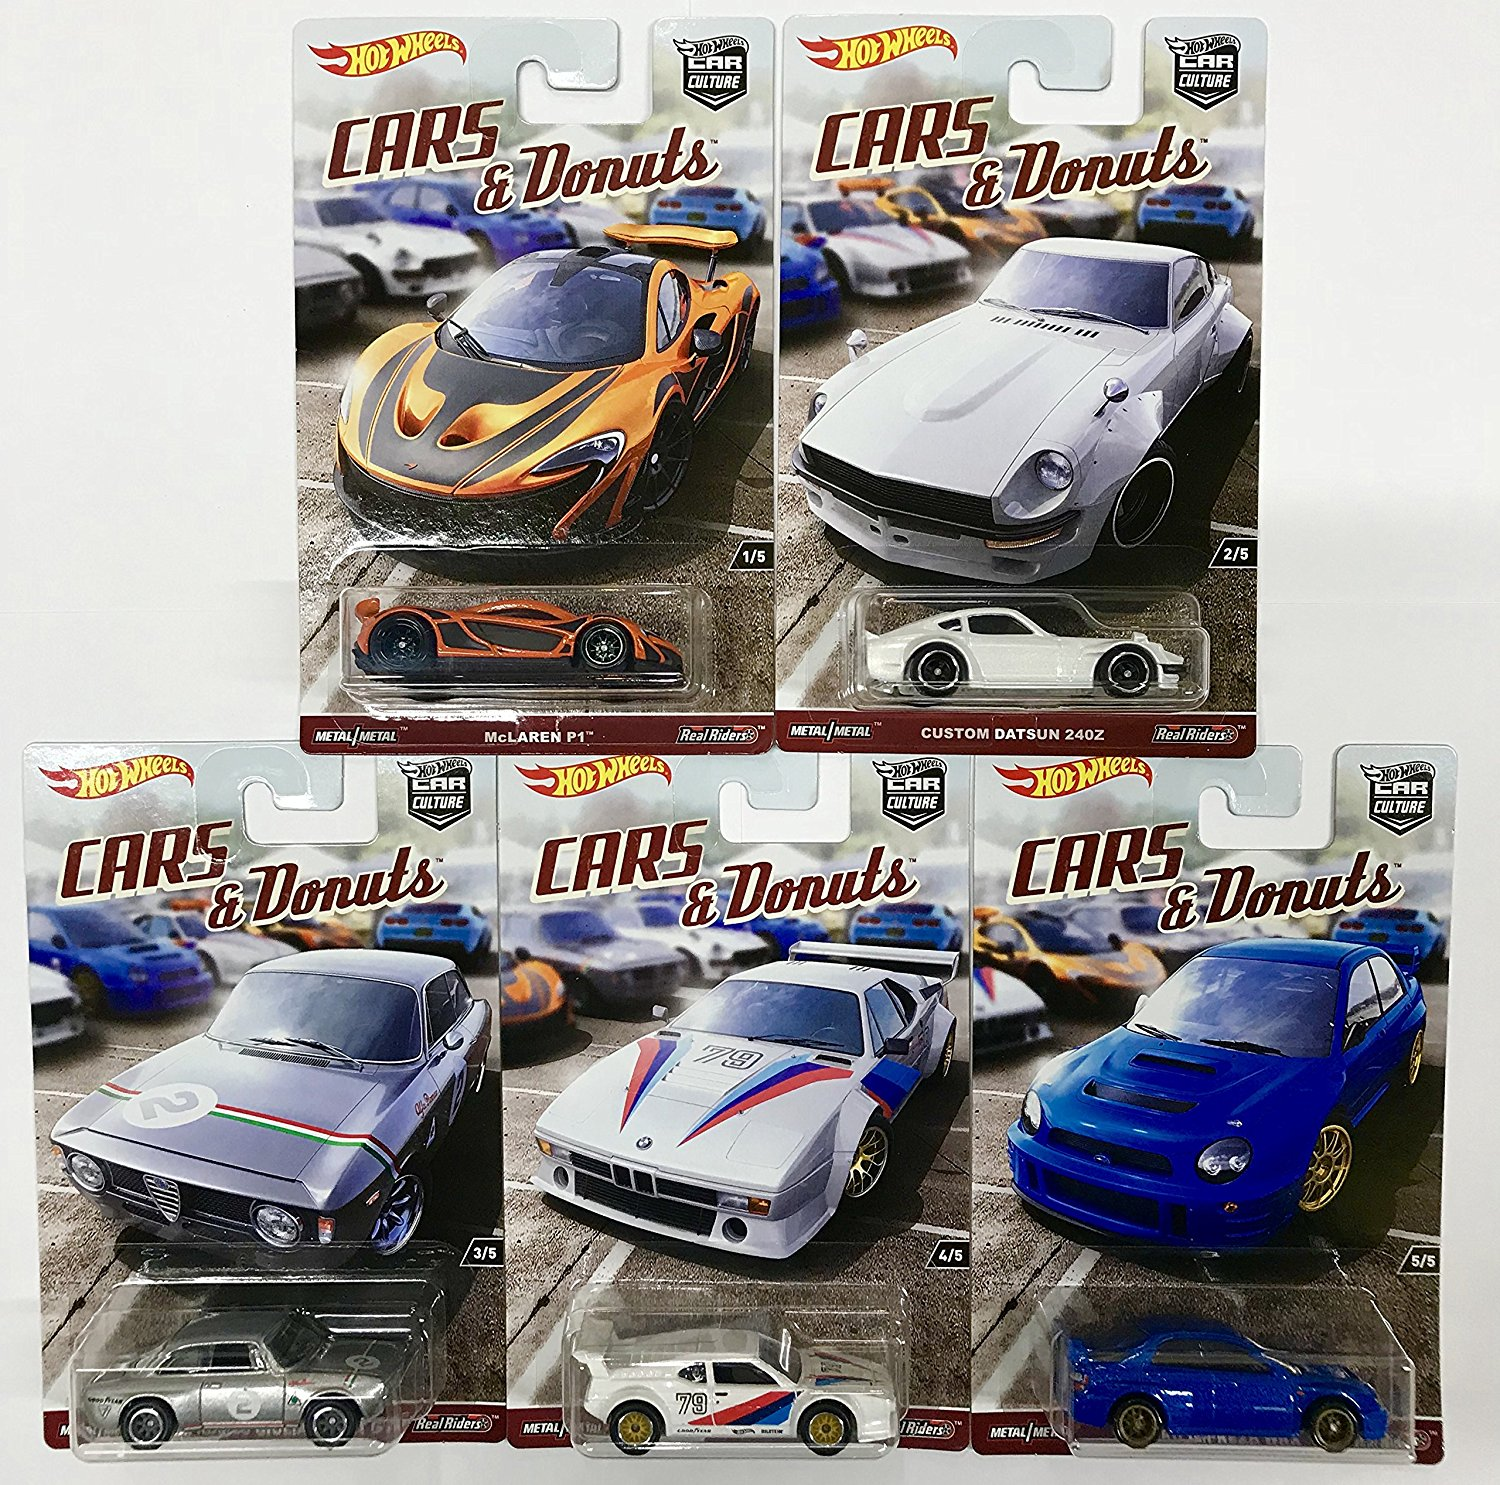 Hot Wheels 1 64 Car Culture Cars and Donuts Set of 5 Real Rider Collectible Die Cast Toy by